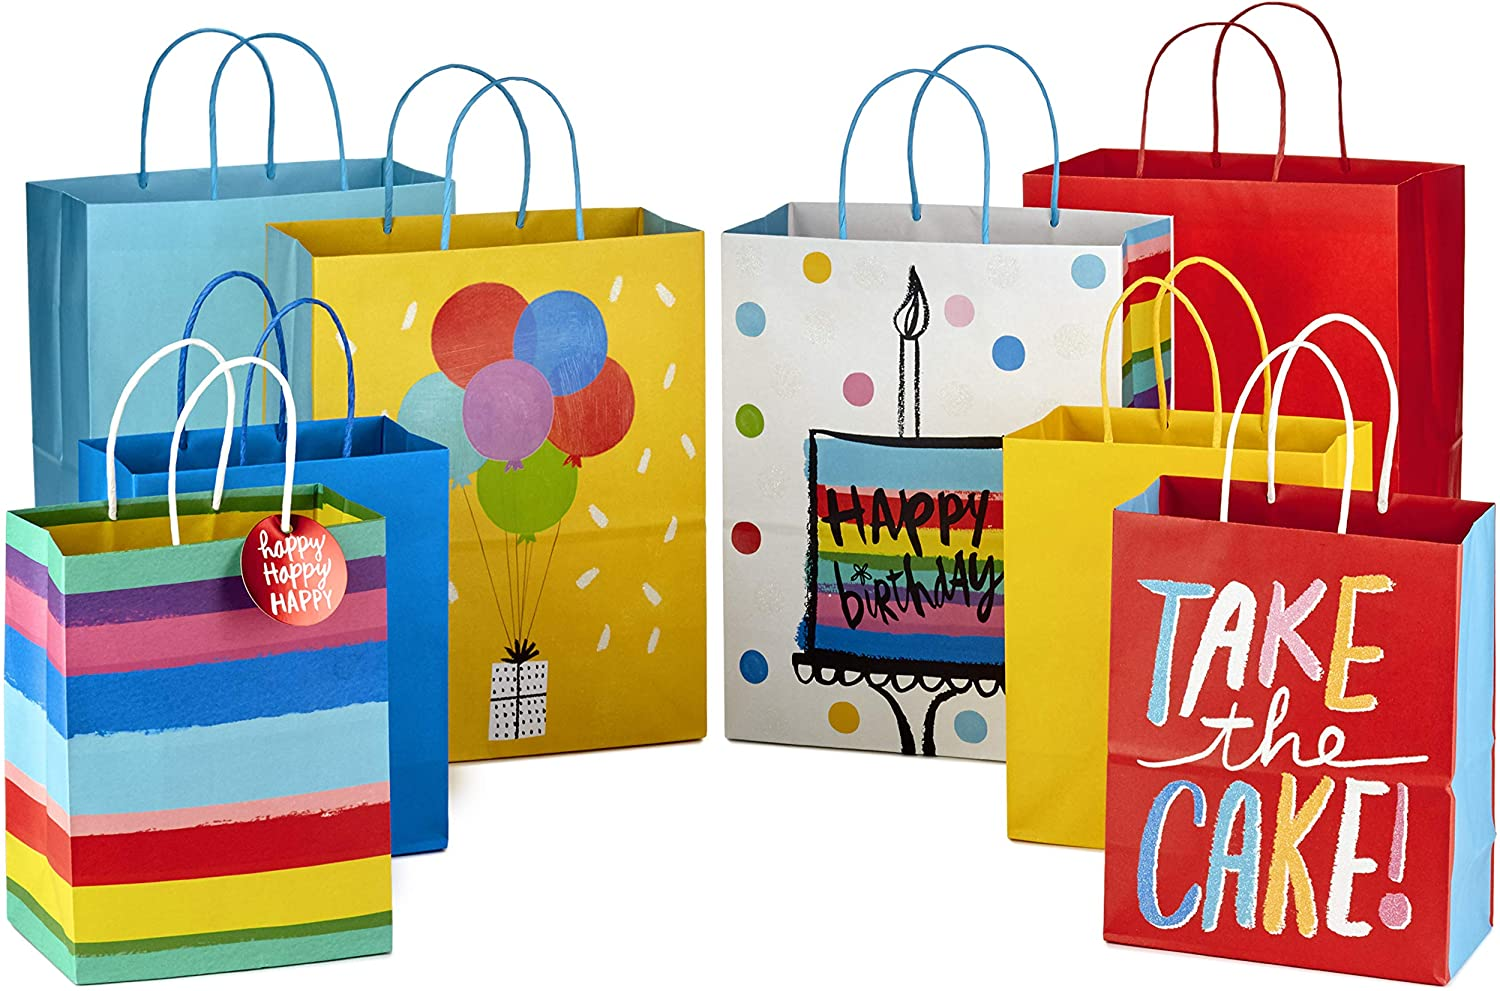 """Hallmark 9"""" Medium and 13"""" Large Gift Bags Assortment (Pack of 8; 4 Large and 4 Medium) for Birthdays, Baby Showers or Any Occasion"""